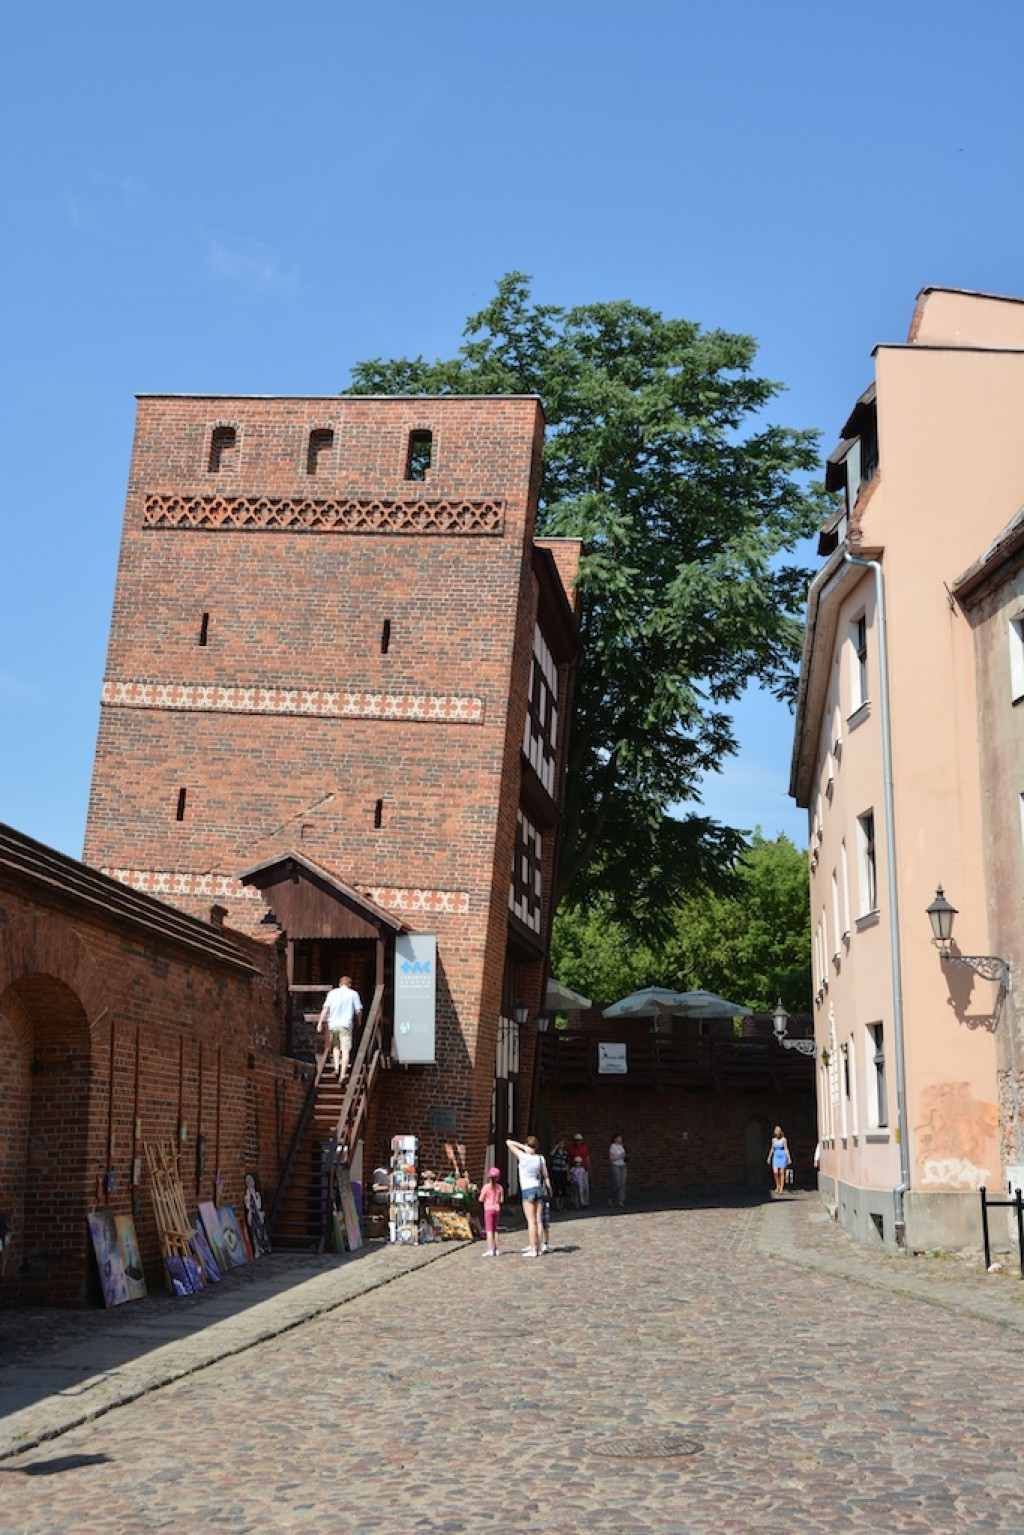 The leaning tower of Torun, or Krzywa Wieża w Toruniu. It leaned because it was built on loamy ground.